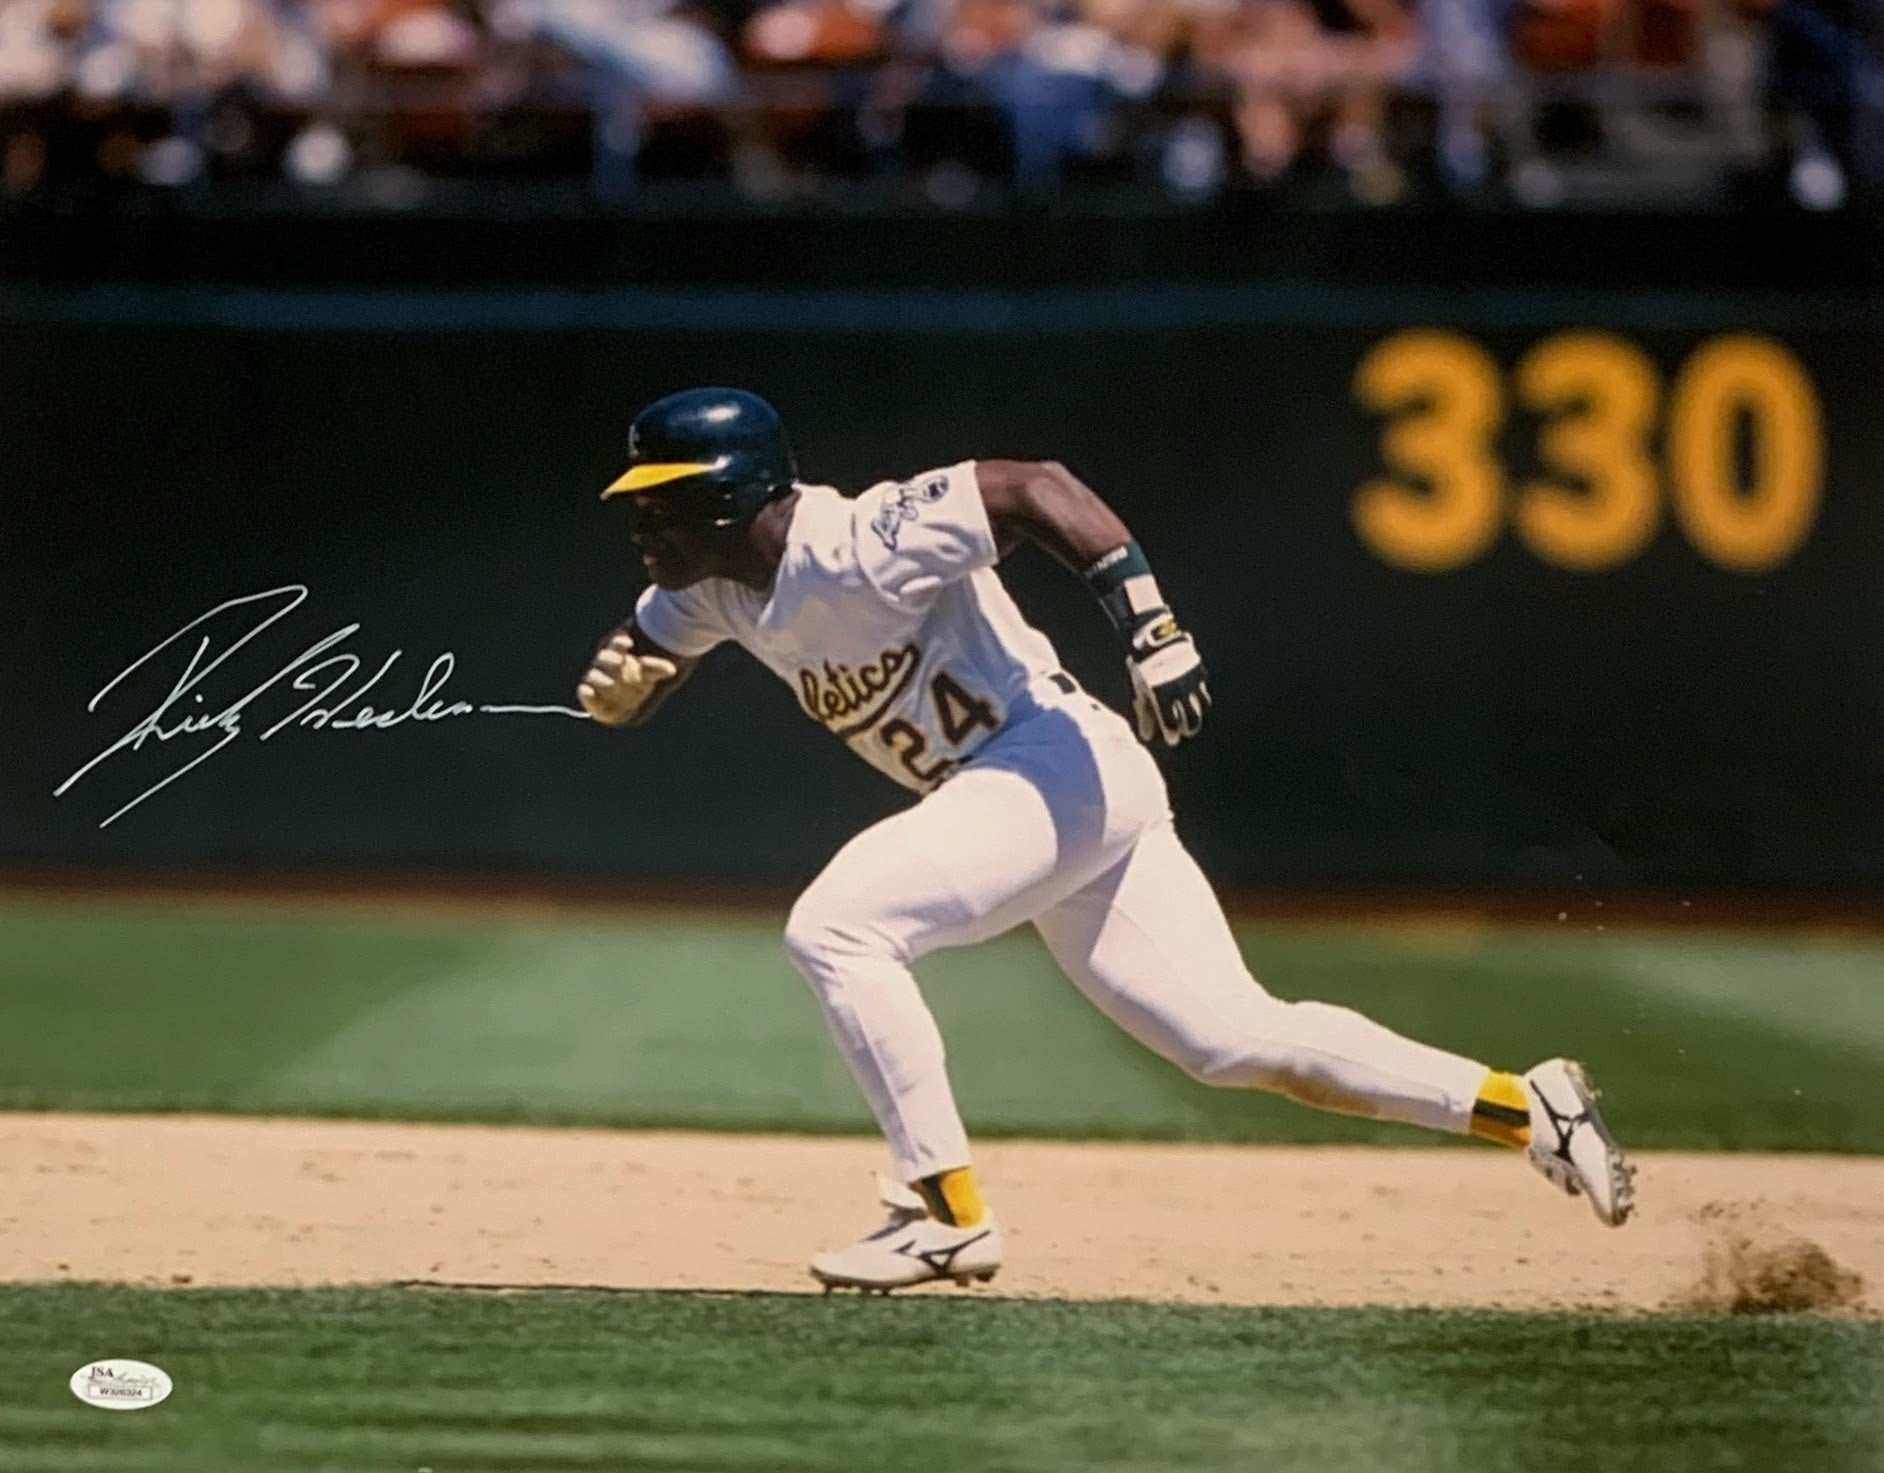 Ricky Henderson Oakland A's Autographed 16x20 Photo - Latitude Sports Marketing